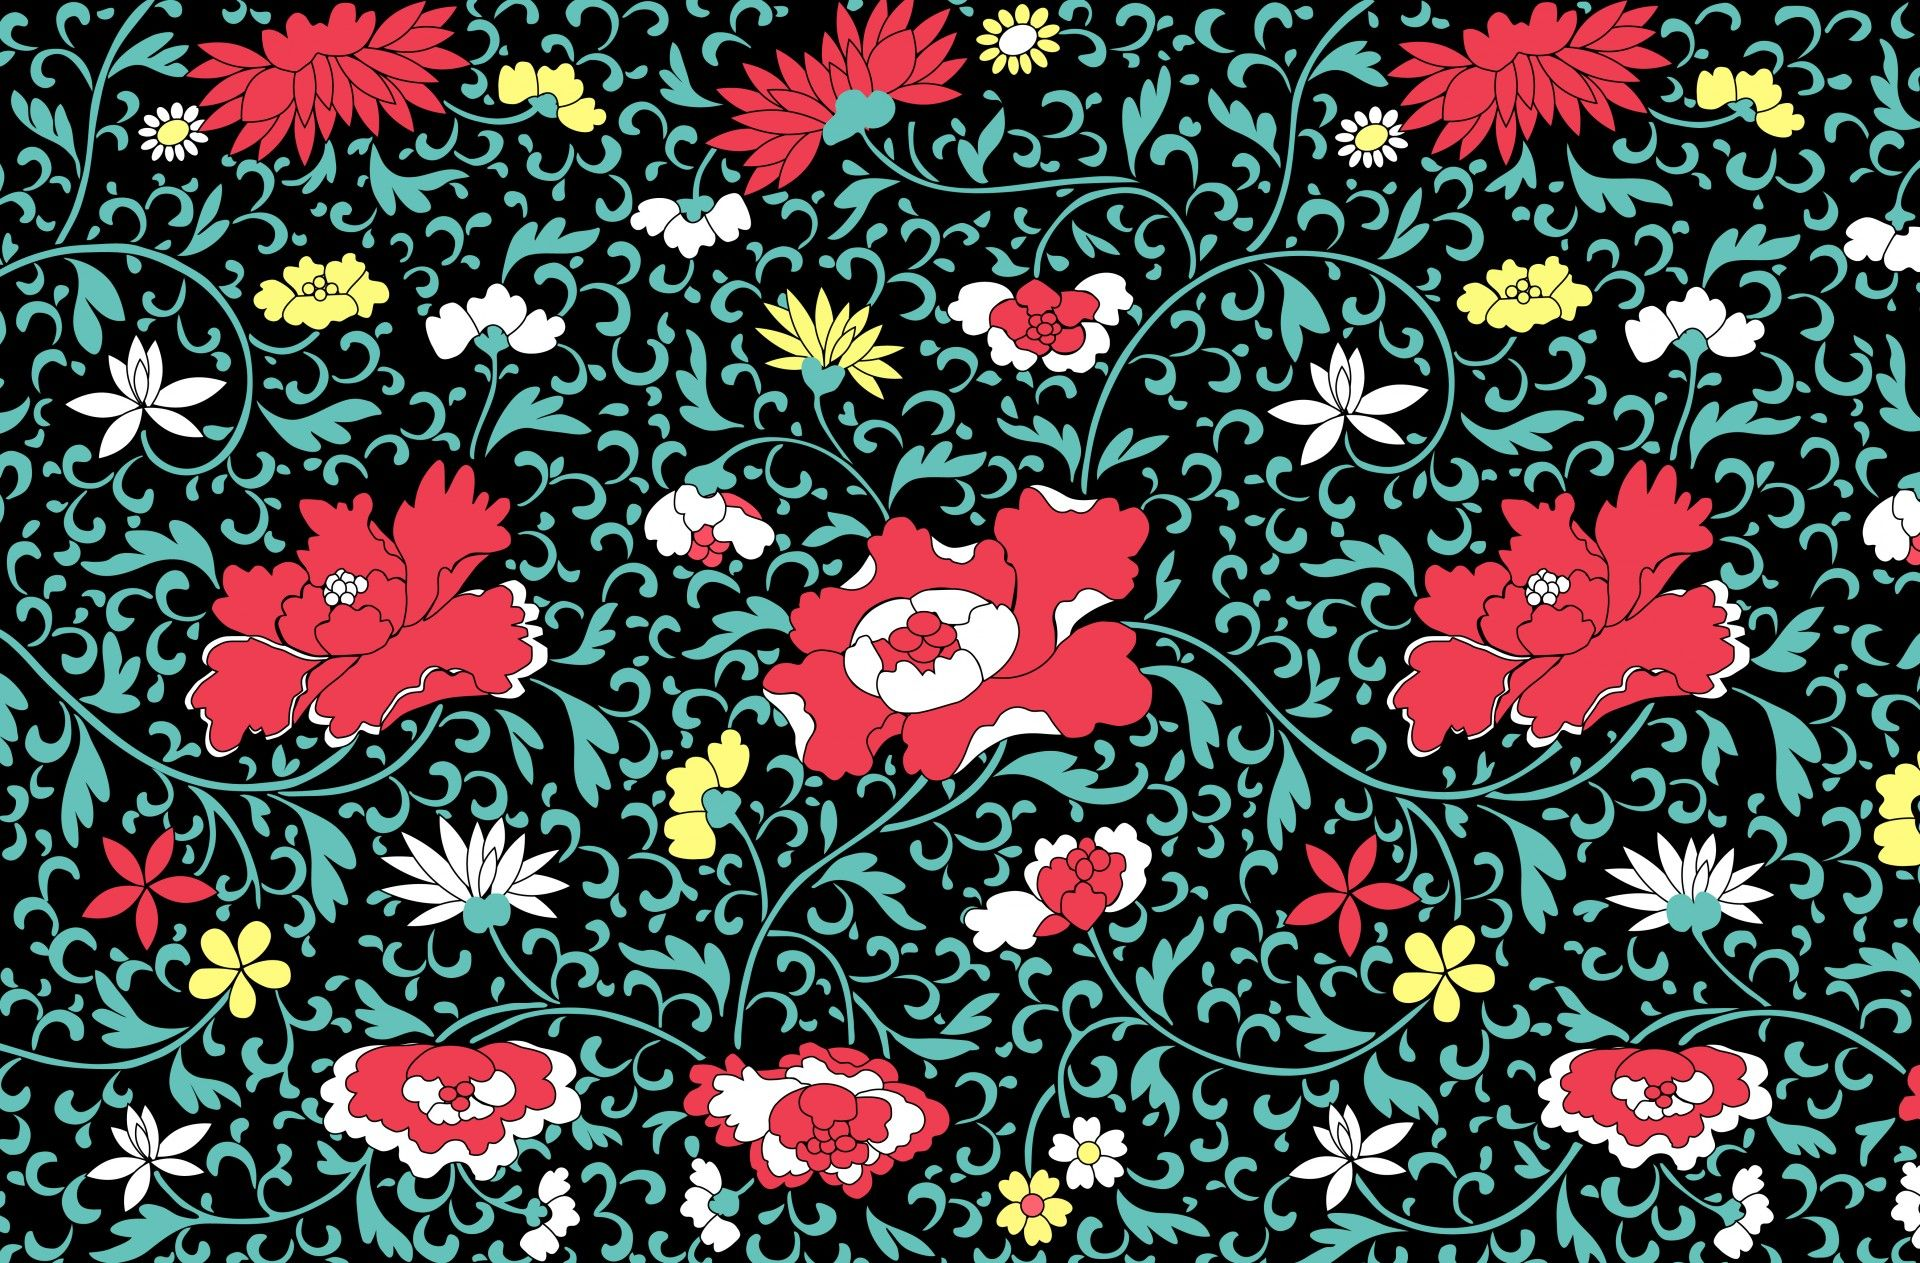 Vintage floral wallpaper background Allover Pinterest